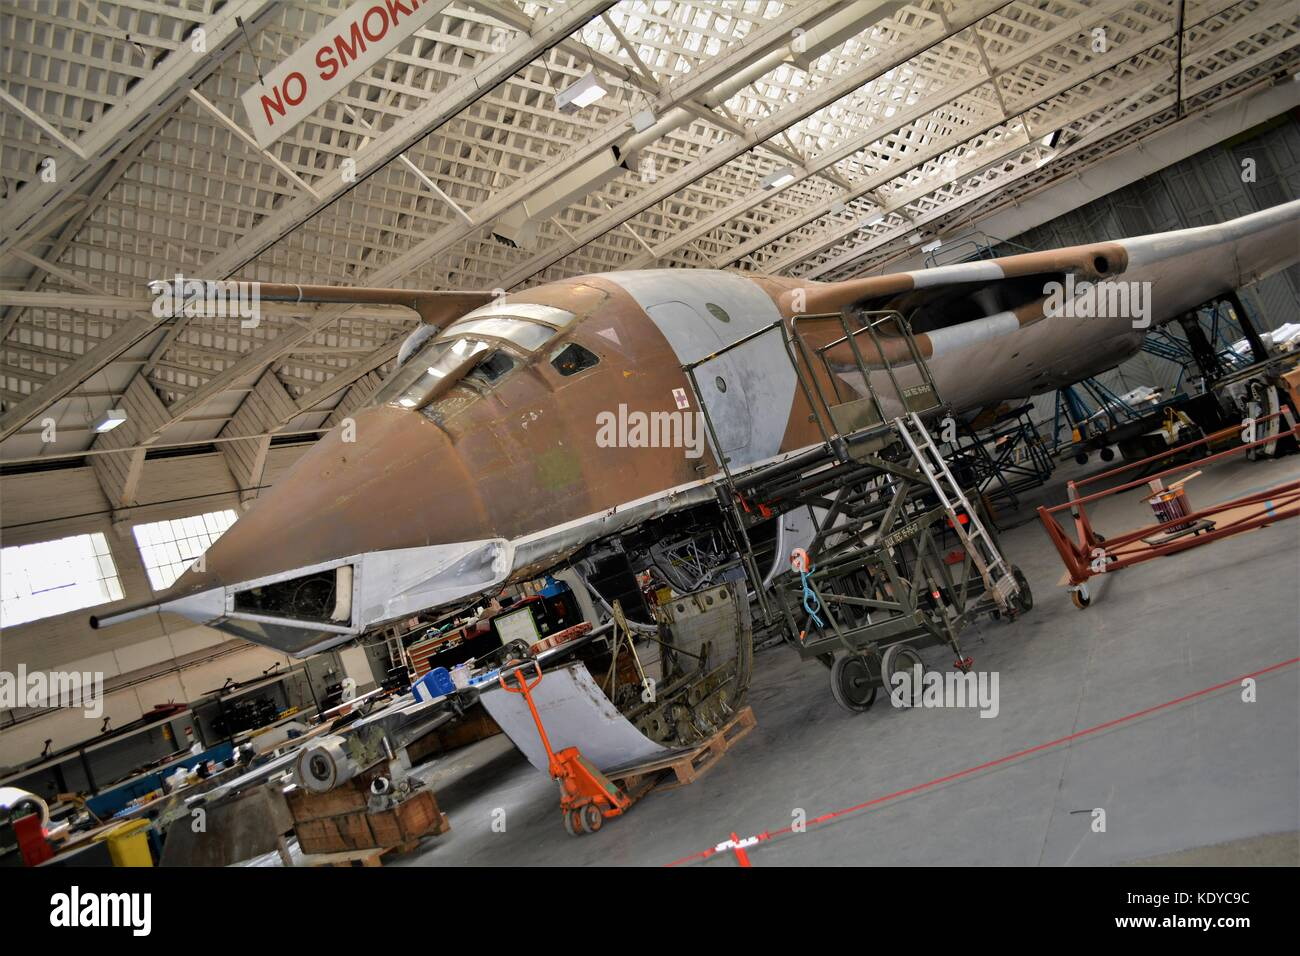 Handley page Victor undergoing repair and preservation at IWM Duxford - Stock Image